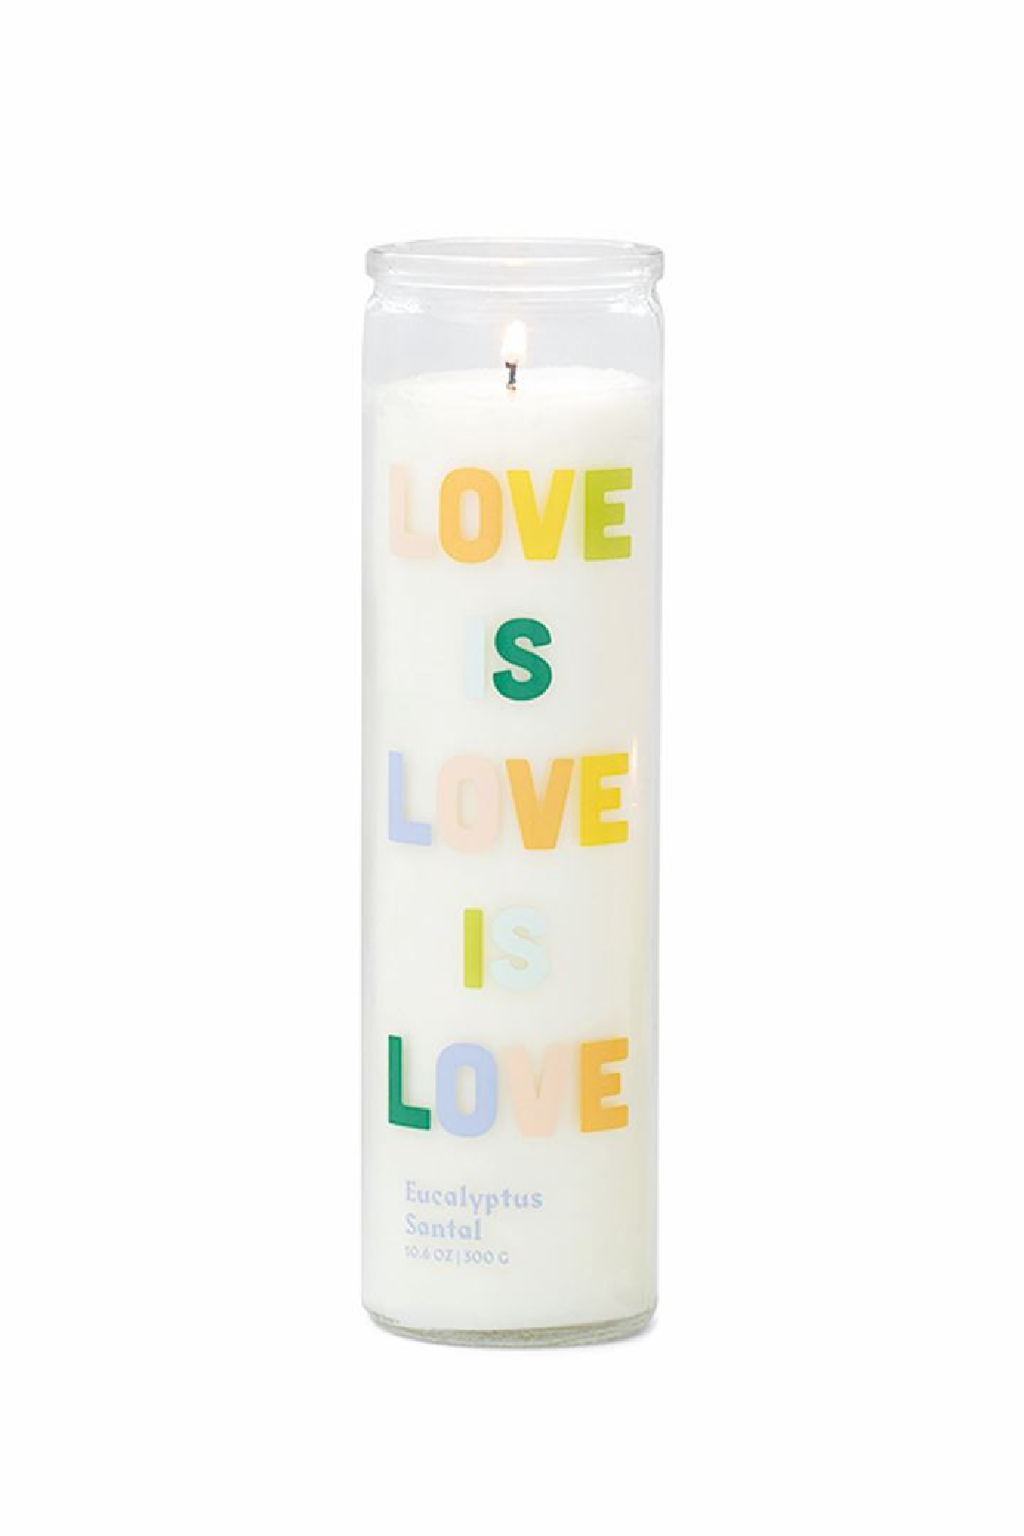 Paddywax Love is Love Prayer Candle 10.6oz